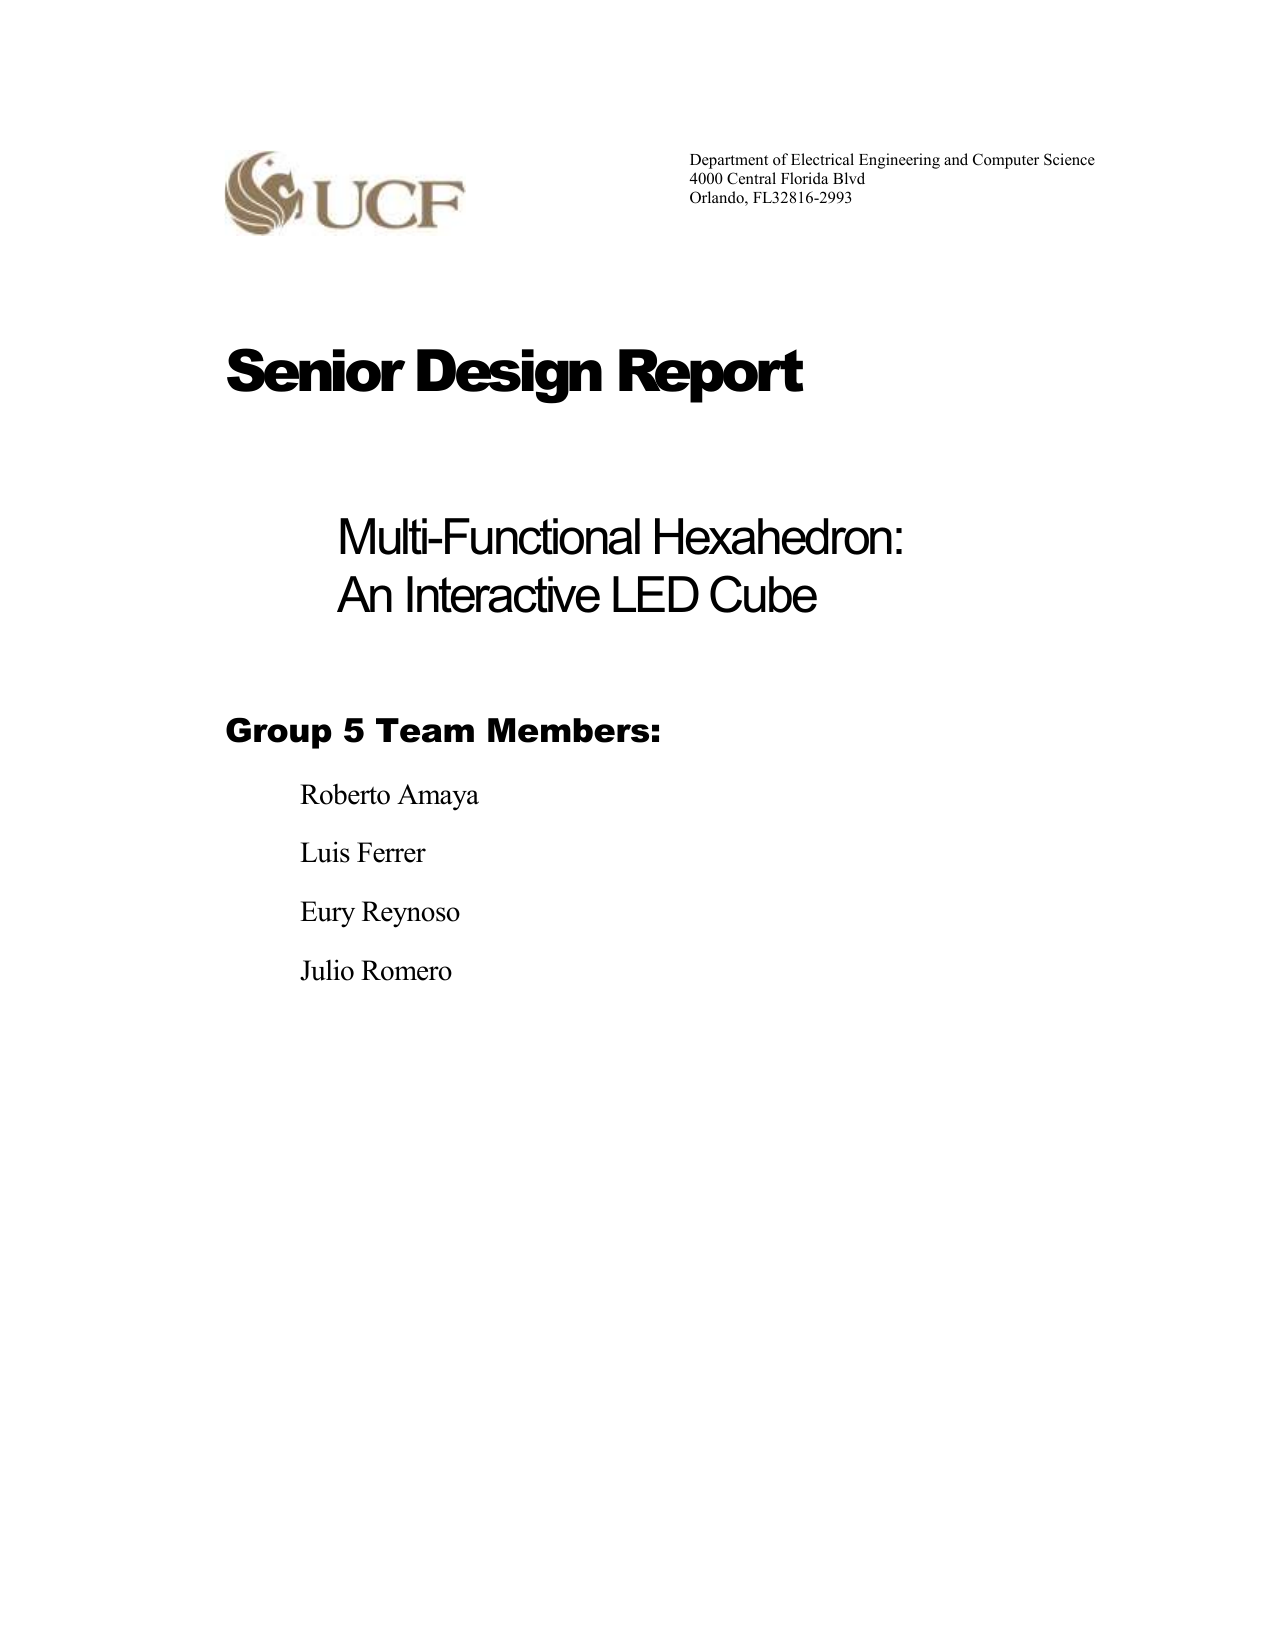 Docx Department Of Electrical Engineering And Computer Science High Power Rgb Led Color Mixing Digikey